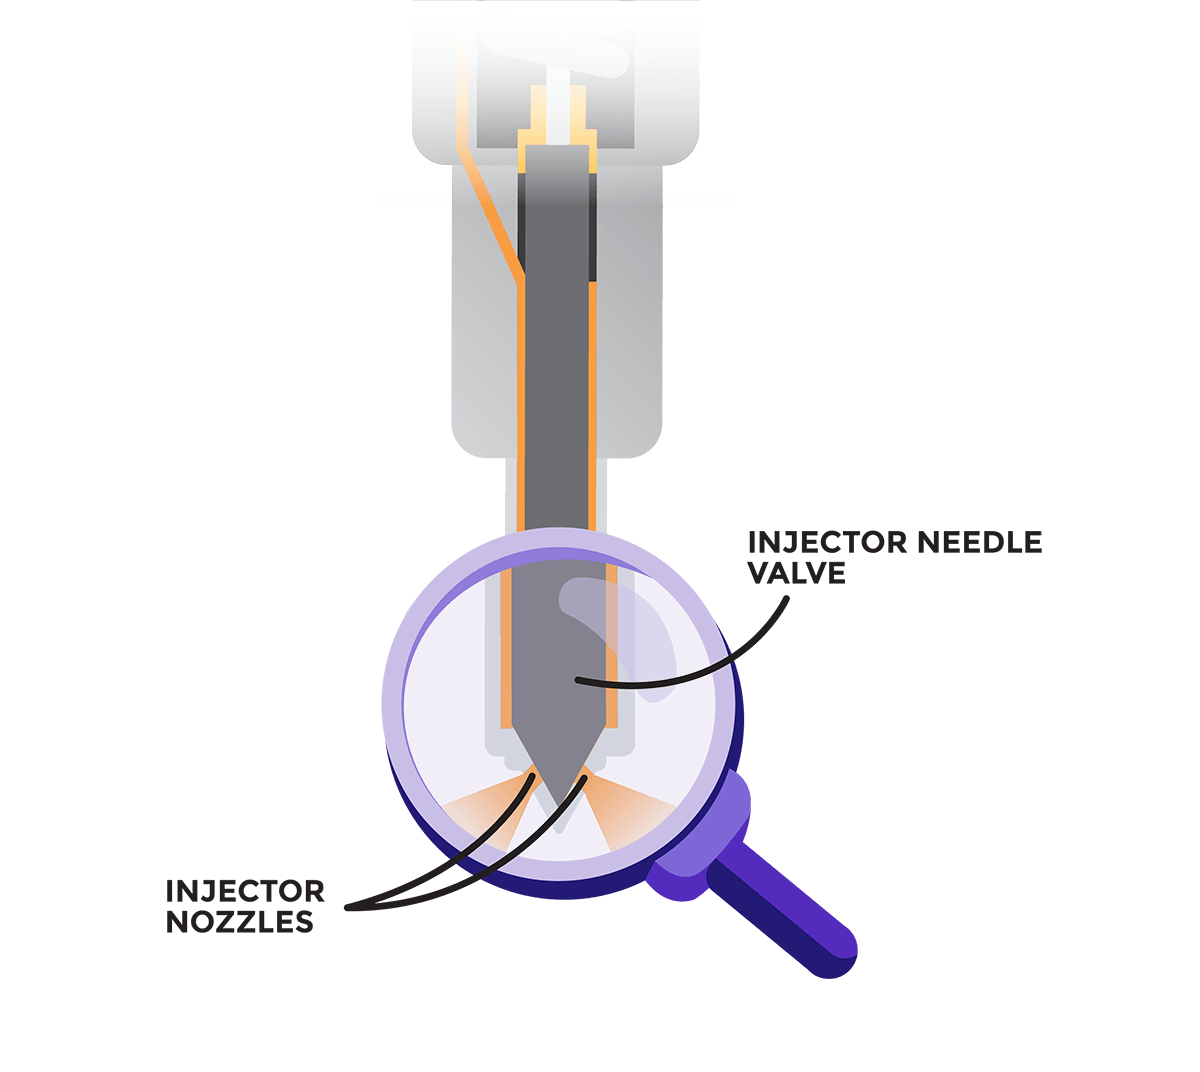 Injector tip magnified graphic